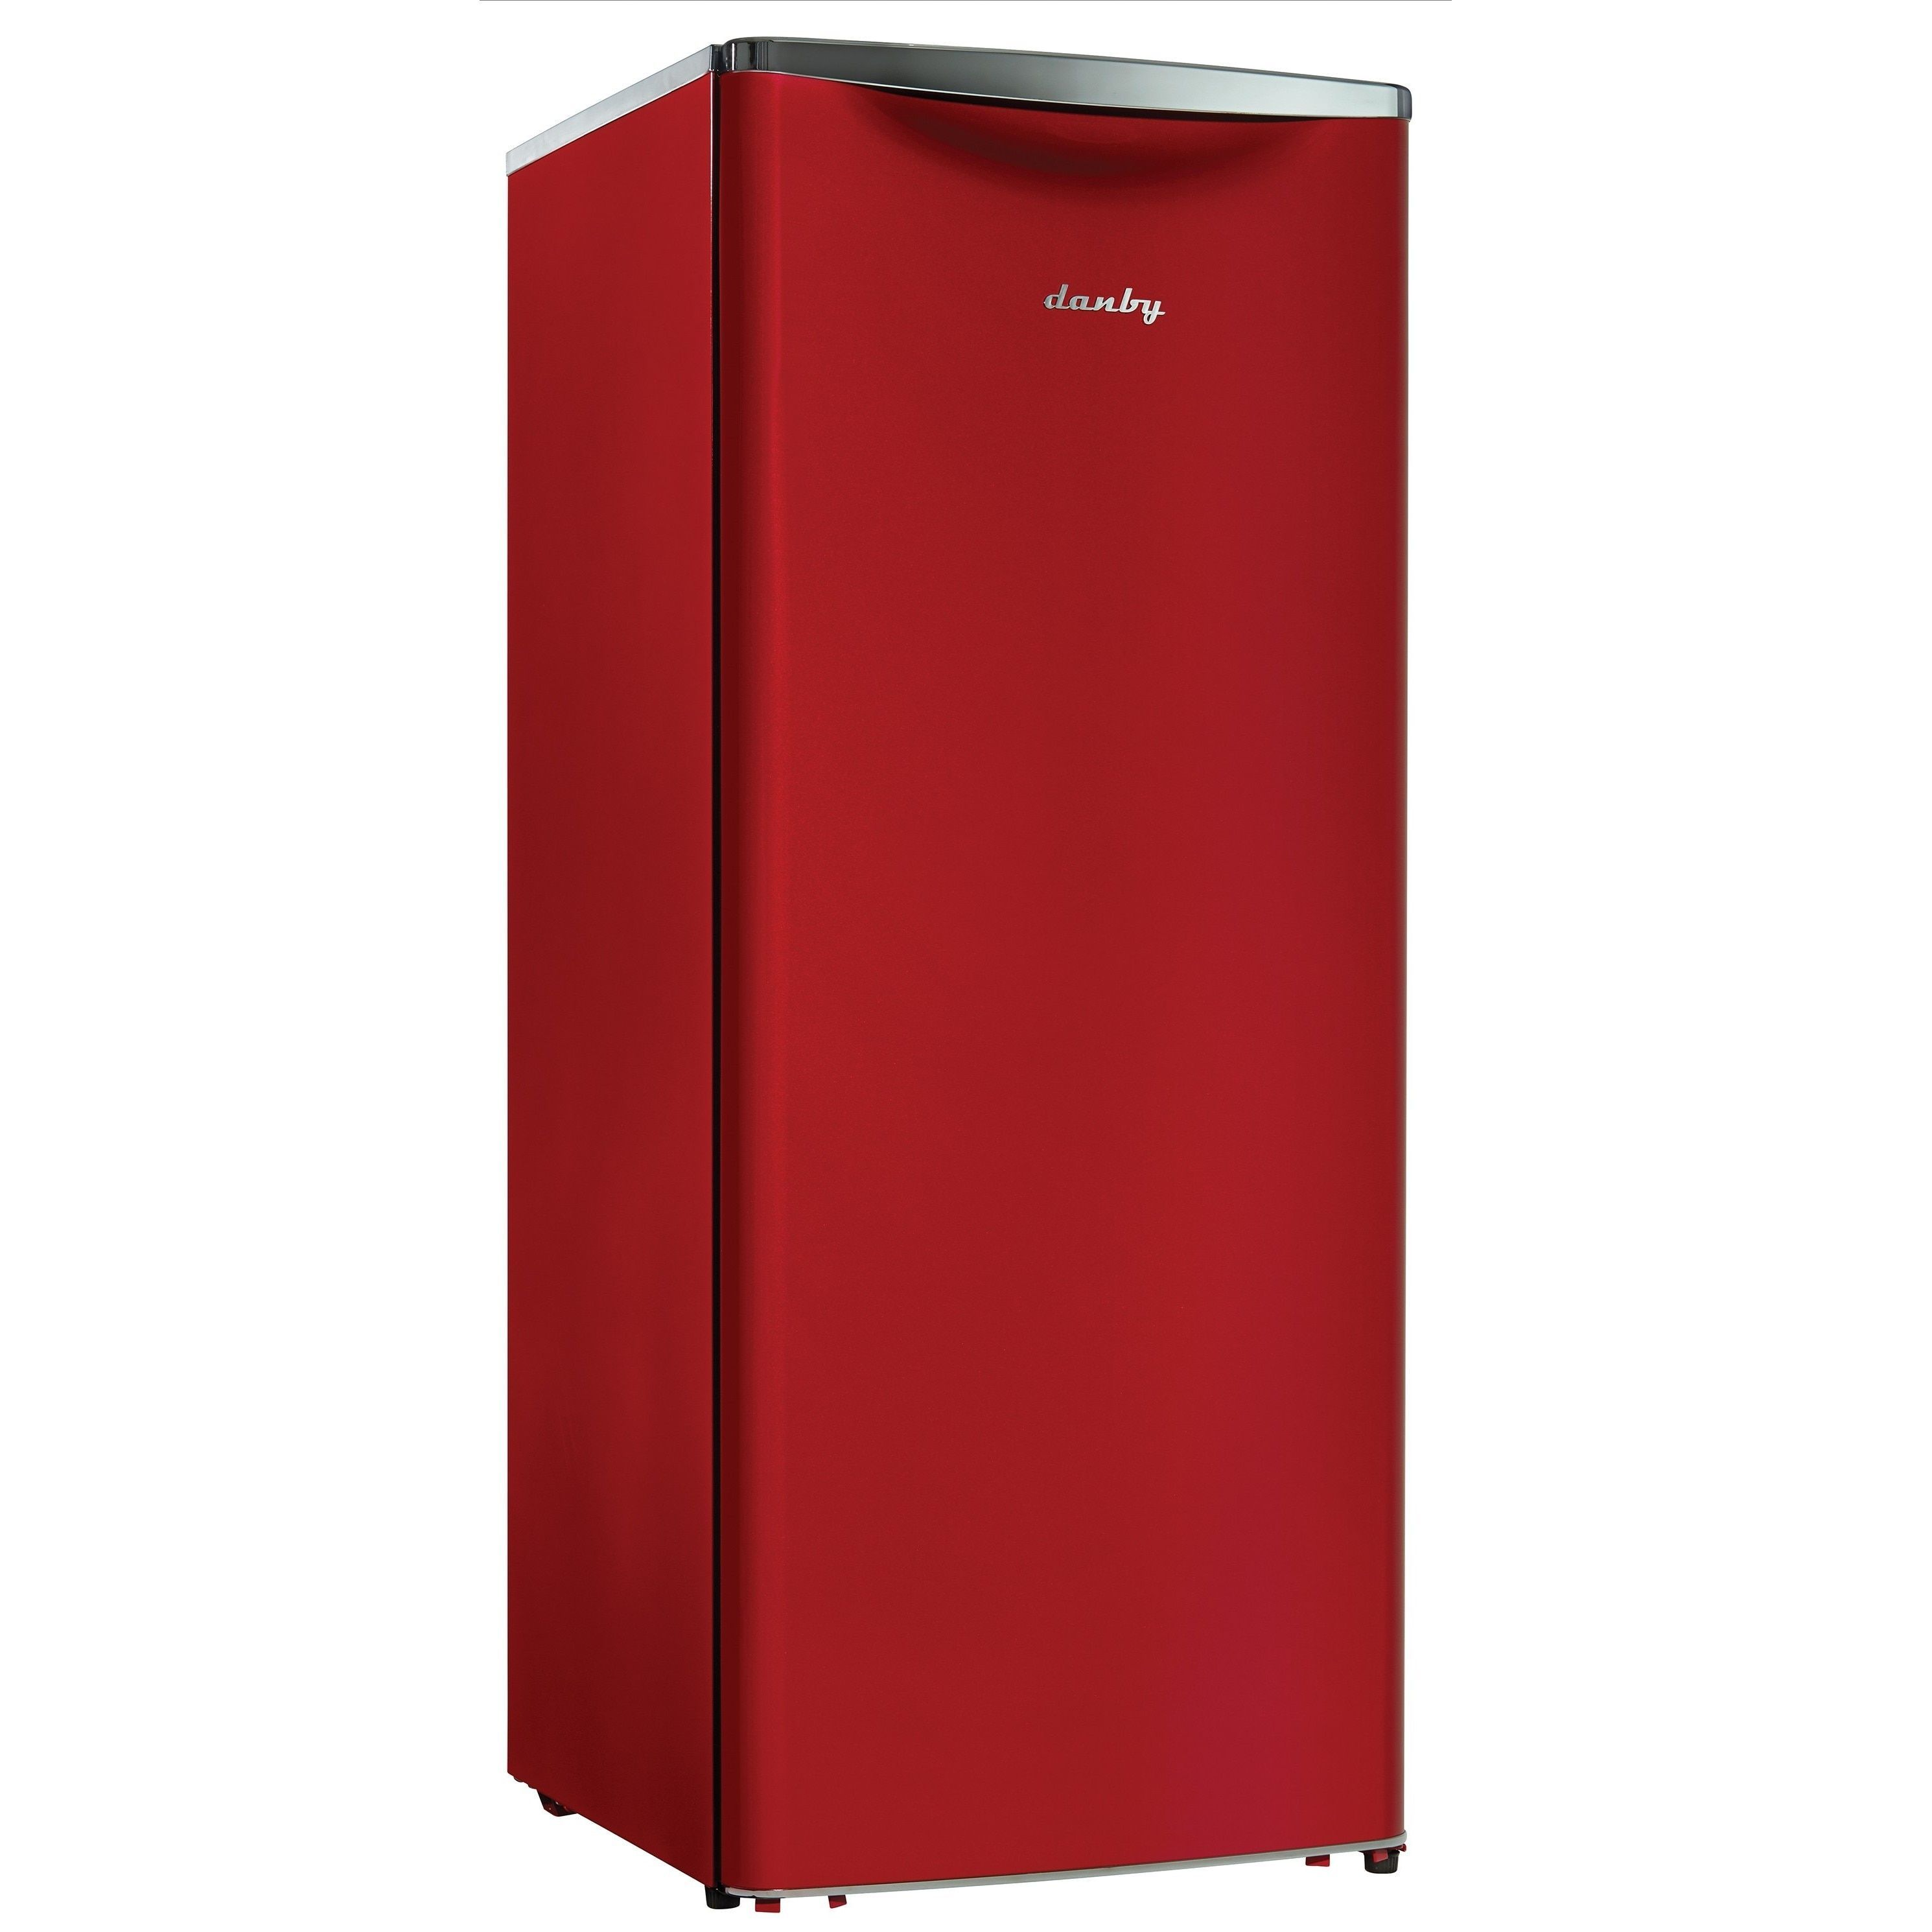 Danby DAR110A2LDB 11CF Apartment Size Refrigerator Red 11 Cu Ft